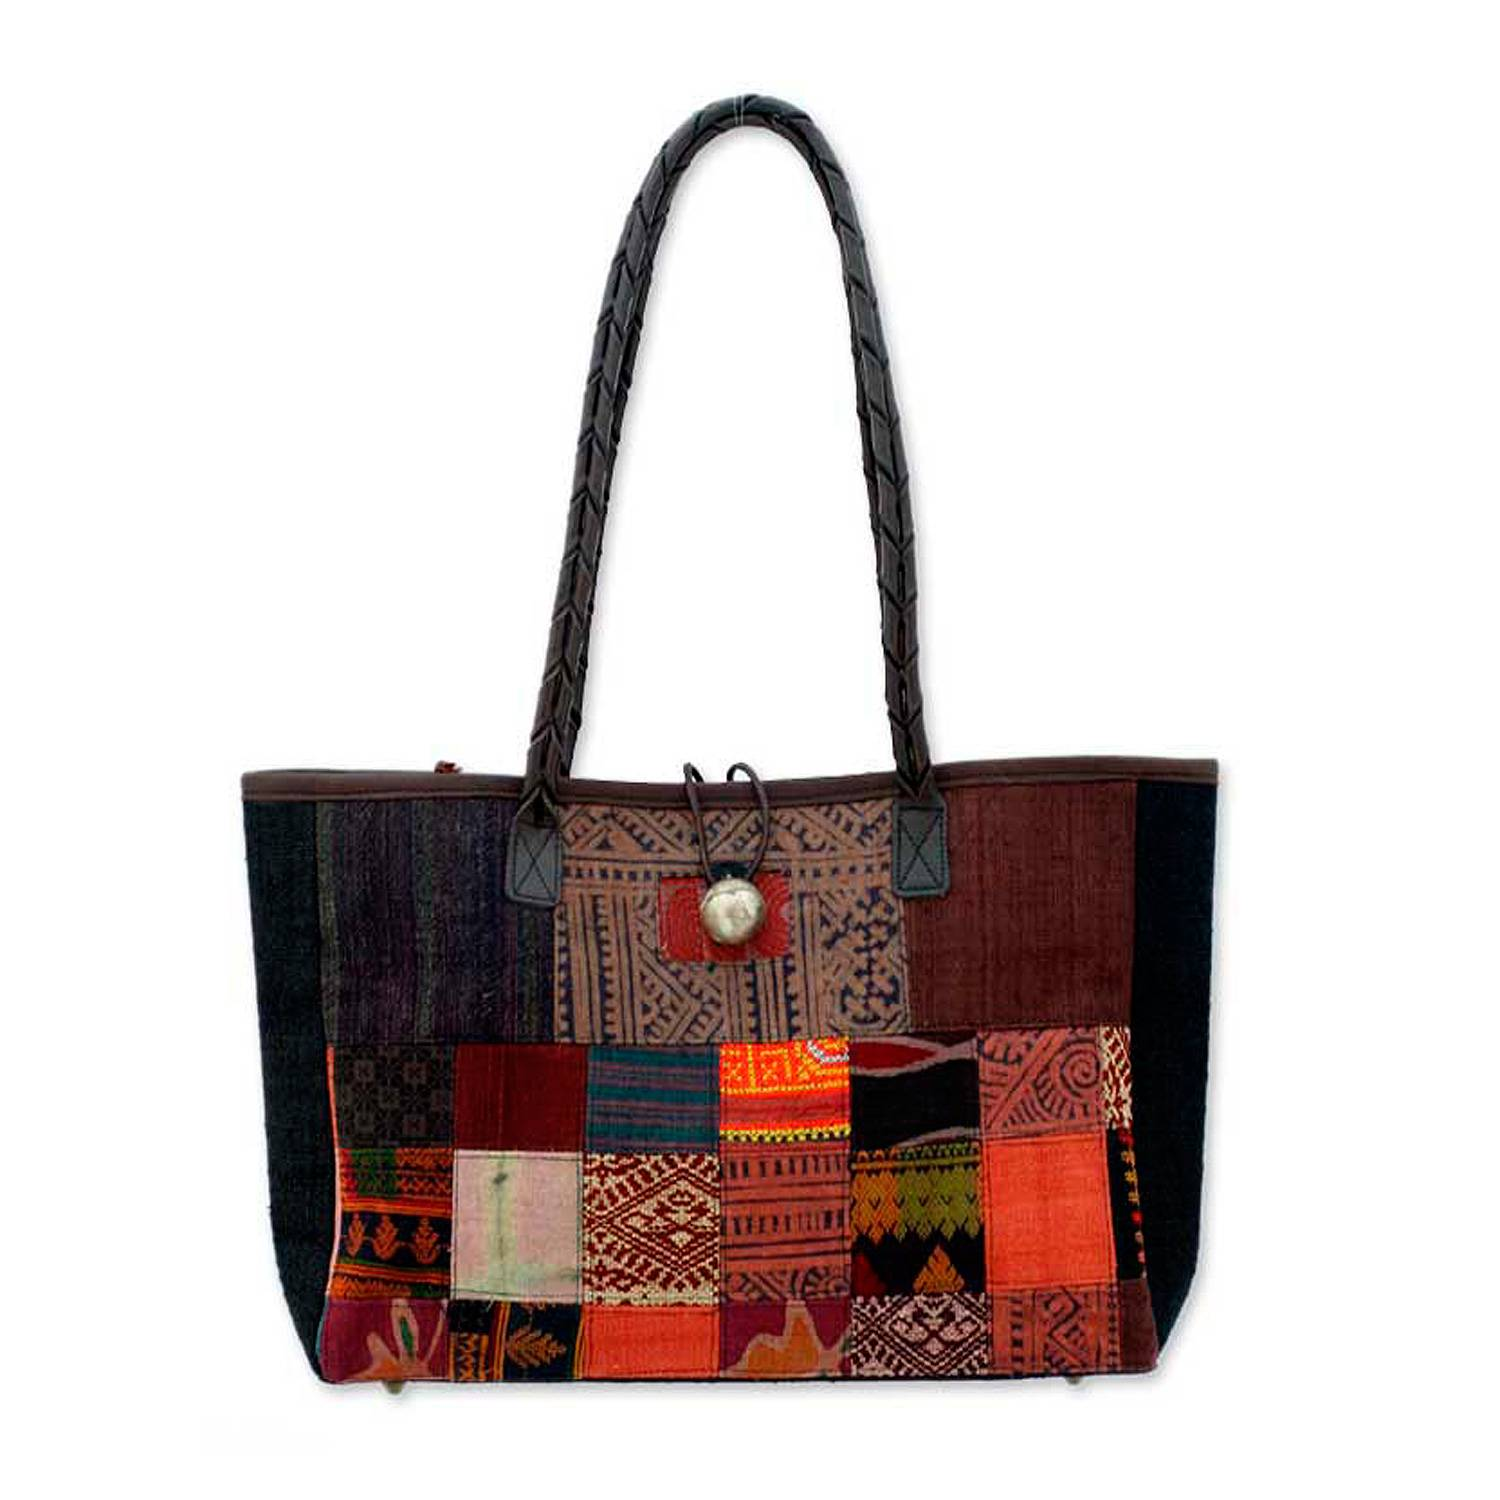 Novica Leather and cotton shoulder bag, Autumn Heart - Hill Tribe Patchwork Art Shoulder Bag